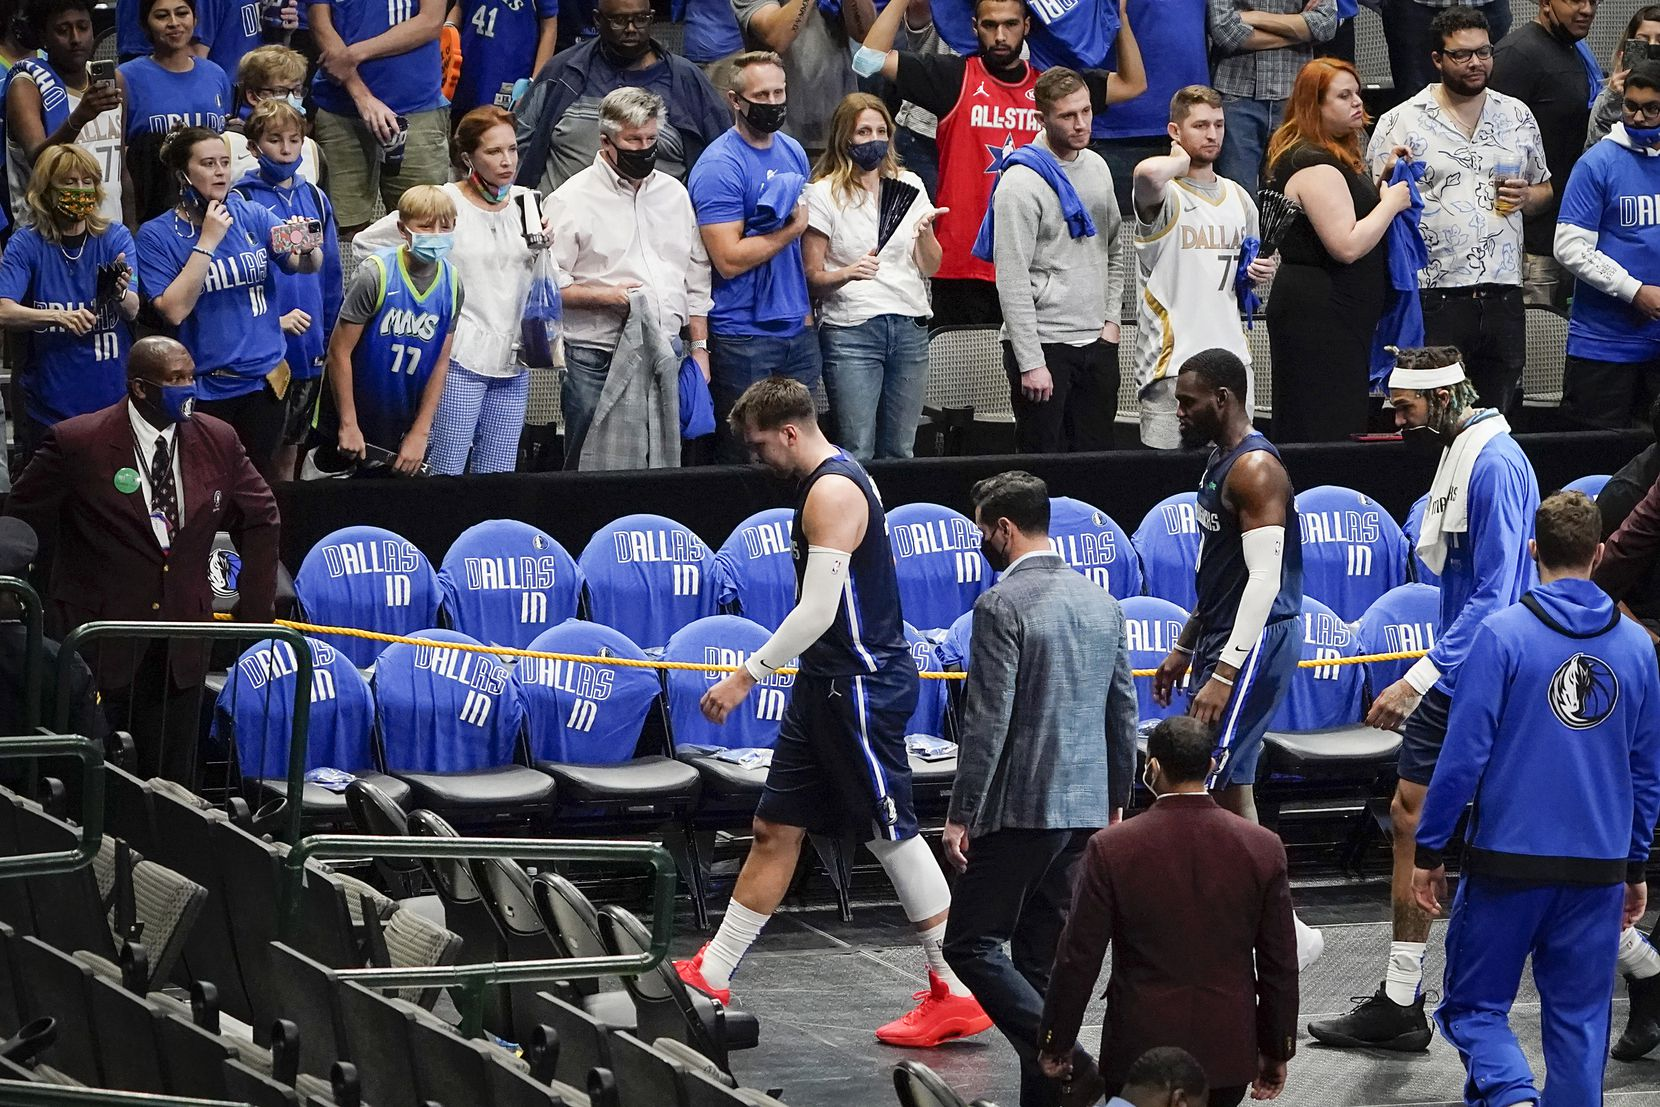 Dallas Mavericks guard Luka Doncic (77), forward Tim Hardaway Jr. (11) and center Willie Cauley-Stein (33) walk off the court following a loss to the LA Clippers in an NBA playoff basketball game at American Airlines Center on Friday, May 28, 2021, in Dallas. (Smiley N. Pool/The Dallas Morning News)